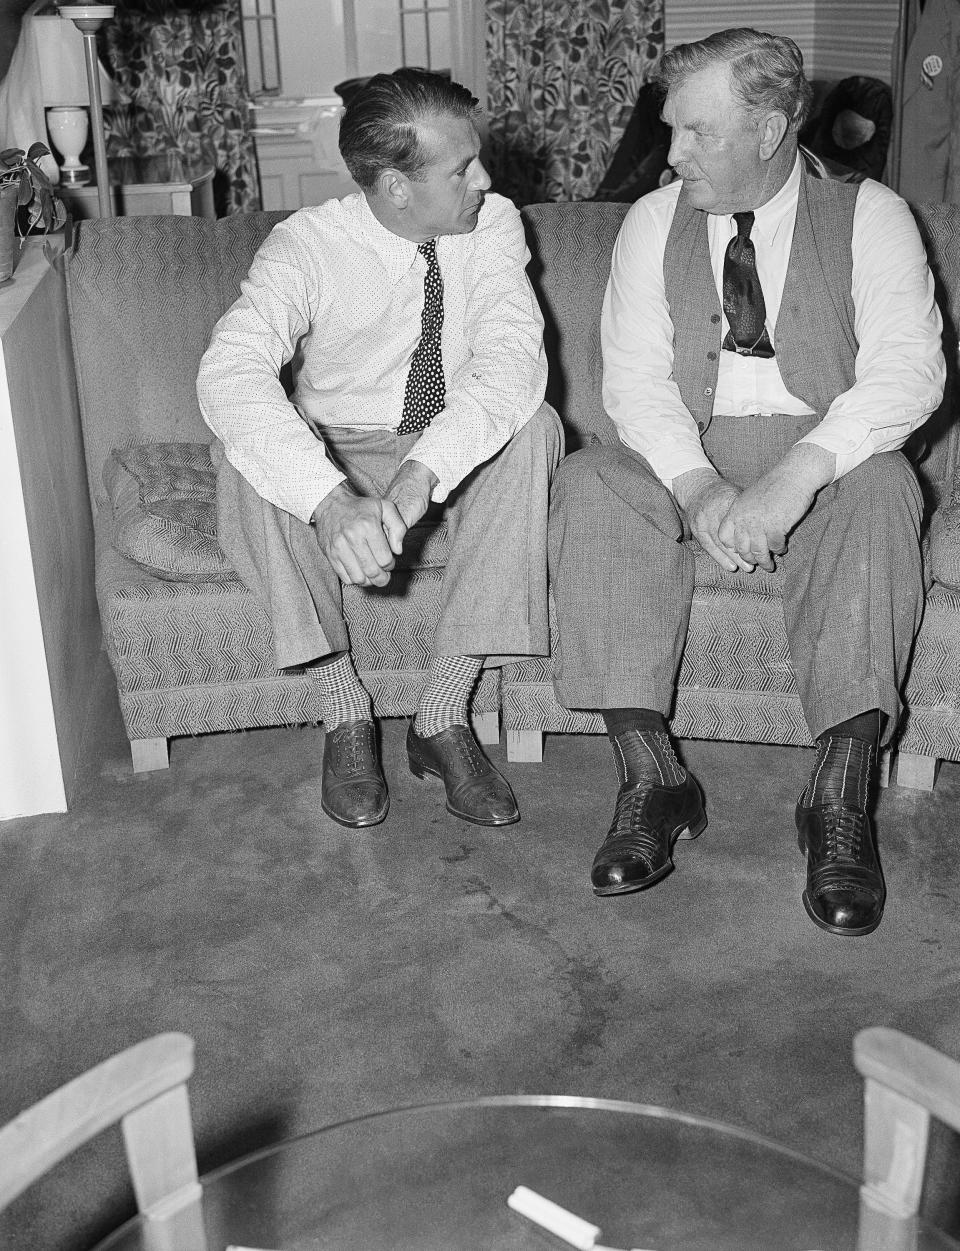 """FILE—In this file photo from July 1, 1941, actor Gary Cooper, left, who played the title role in the movie """"Sergeant York,"""" talks with Sgt. Alvin York, on whose life the movie was based, at a New York hotel. The claim in Pennsylvania state Sen. Doug Mastriano's 2014 book about York, that a 1918 U.S. Army Signal Corps photo was mislabeled and actually shows York with three German officers he captured, has been disputed by rival researchers. (AP Photo, File)"""